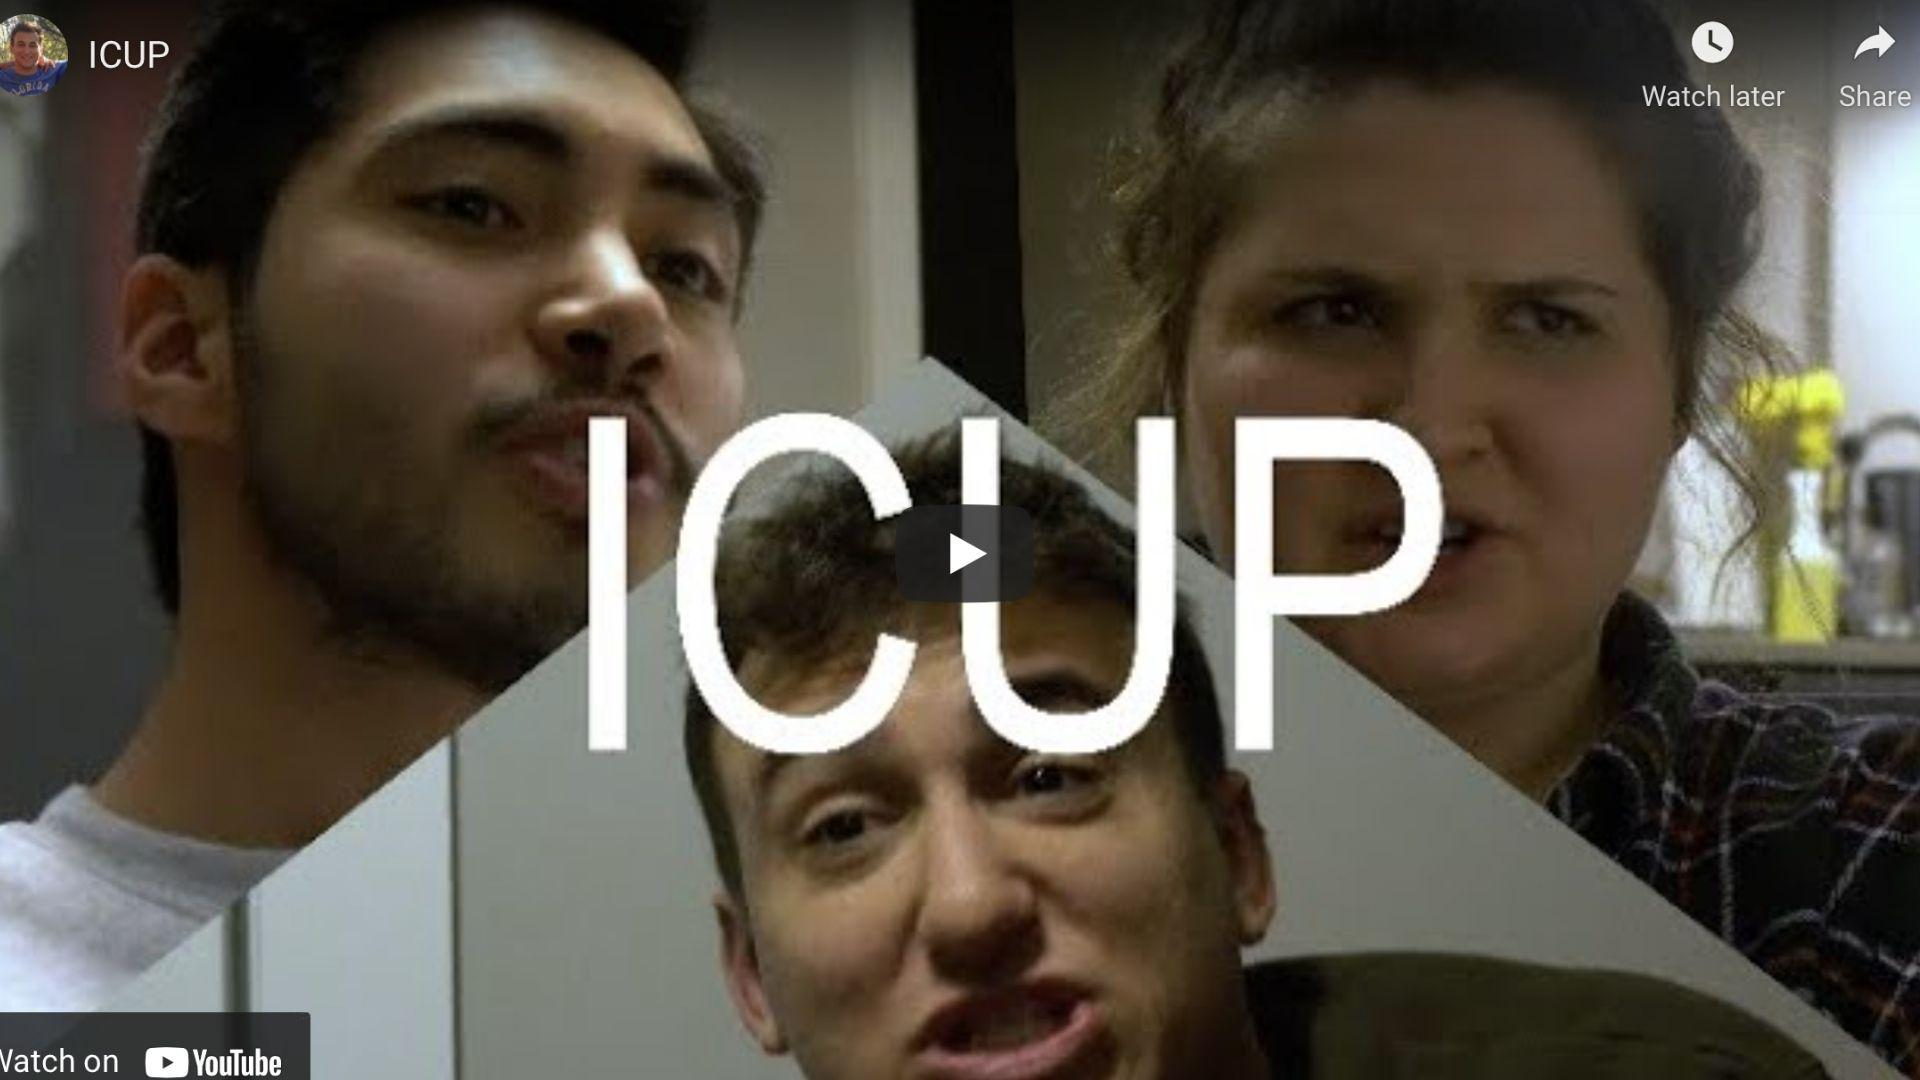 Spell ICUP